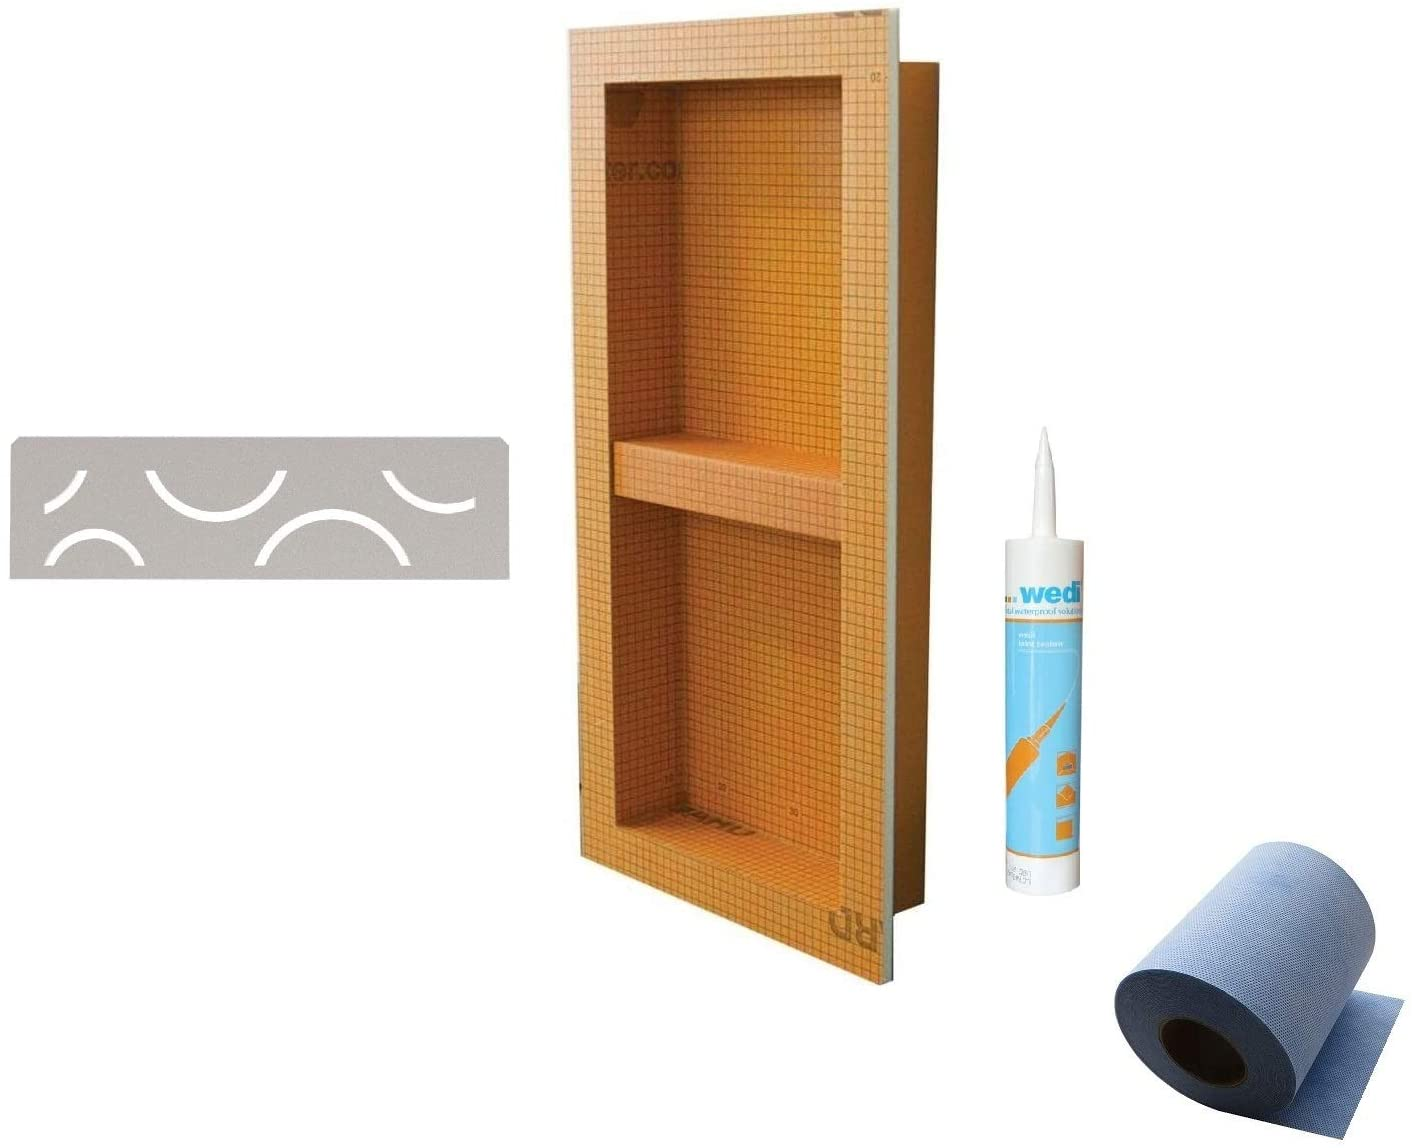 Schluter Systems KERDI-BOARD-SN KB12SN305711A1 Shower Niche 12 Inch x 28 Inch, Curve SNS1D6TSBG Greige Shelf with Sealant and Waterproofing 5M Band